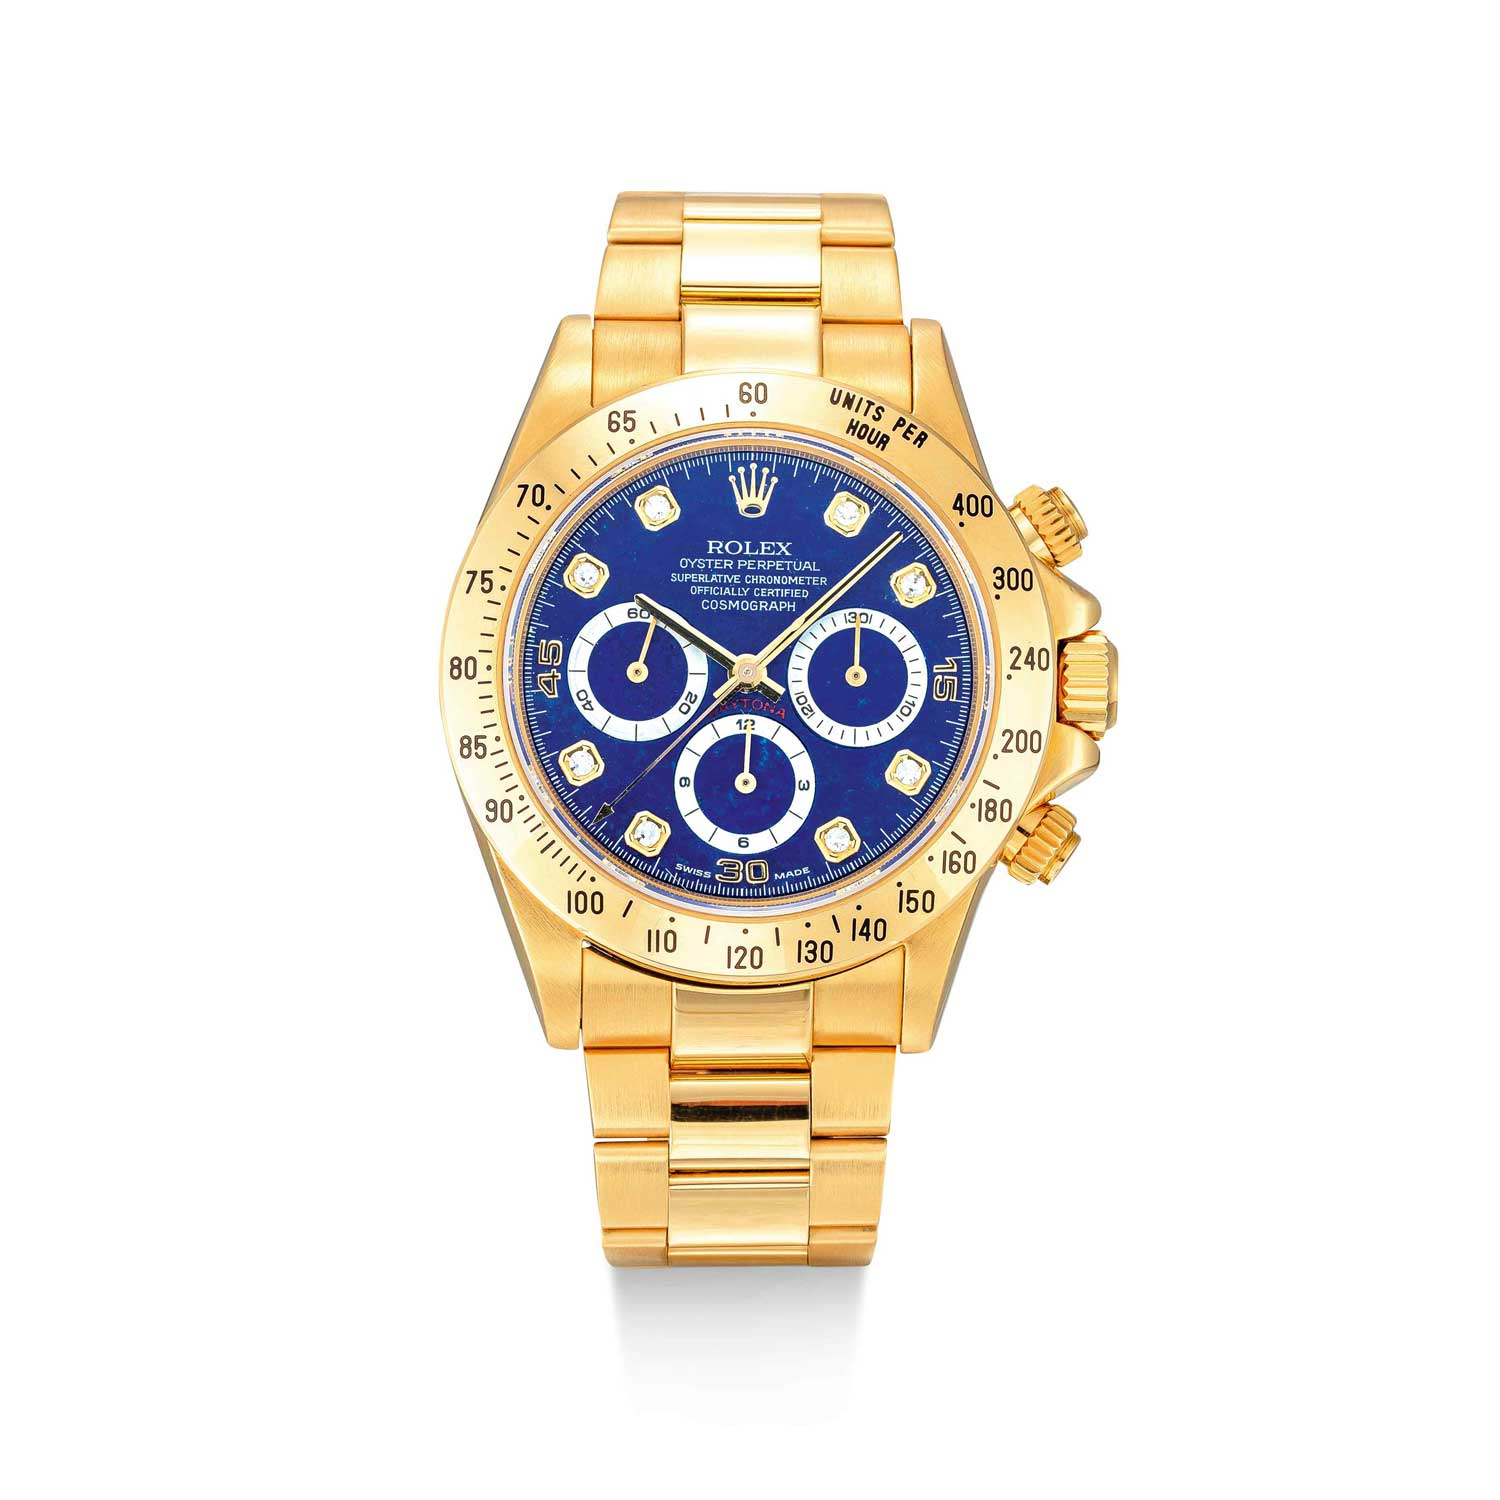 Rolex Daytona reference 16528 in yellow gold with a Lapis Lazuli dial, up for sale with Sotheby's Autumn 2020 sale in Hong Kong